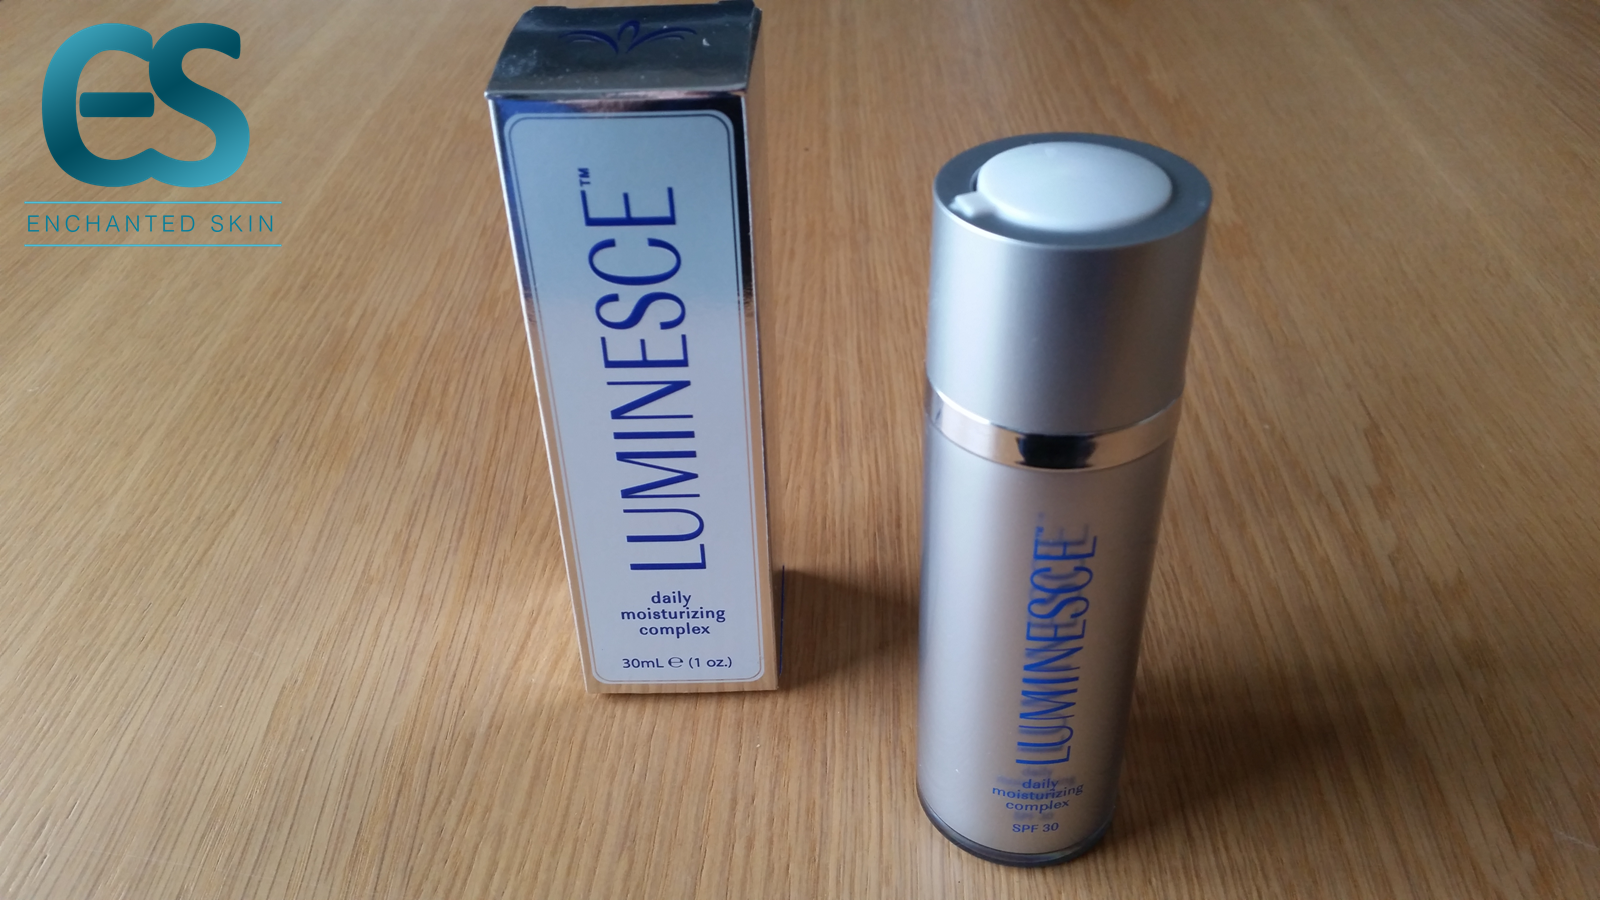 LUMINESCE™ daily moisturizing complex A brilliant, all-day facial cream with serious anti-wrinkle and anti-aging benefits. daily moisturizing complex contains apple, lentil, and watermelon extracts for intracellular hydration* plus extracts of red seaweed and green algae to maintain moisture and elasticity.   #Beauty #Bblogger #BeautyNews #Beautytrends #Naturalbeauty #Lookyounger #Beautifulskin #Dryskin #Makeuptips #Skincare